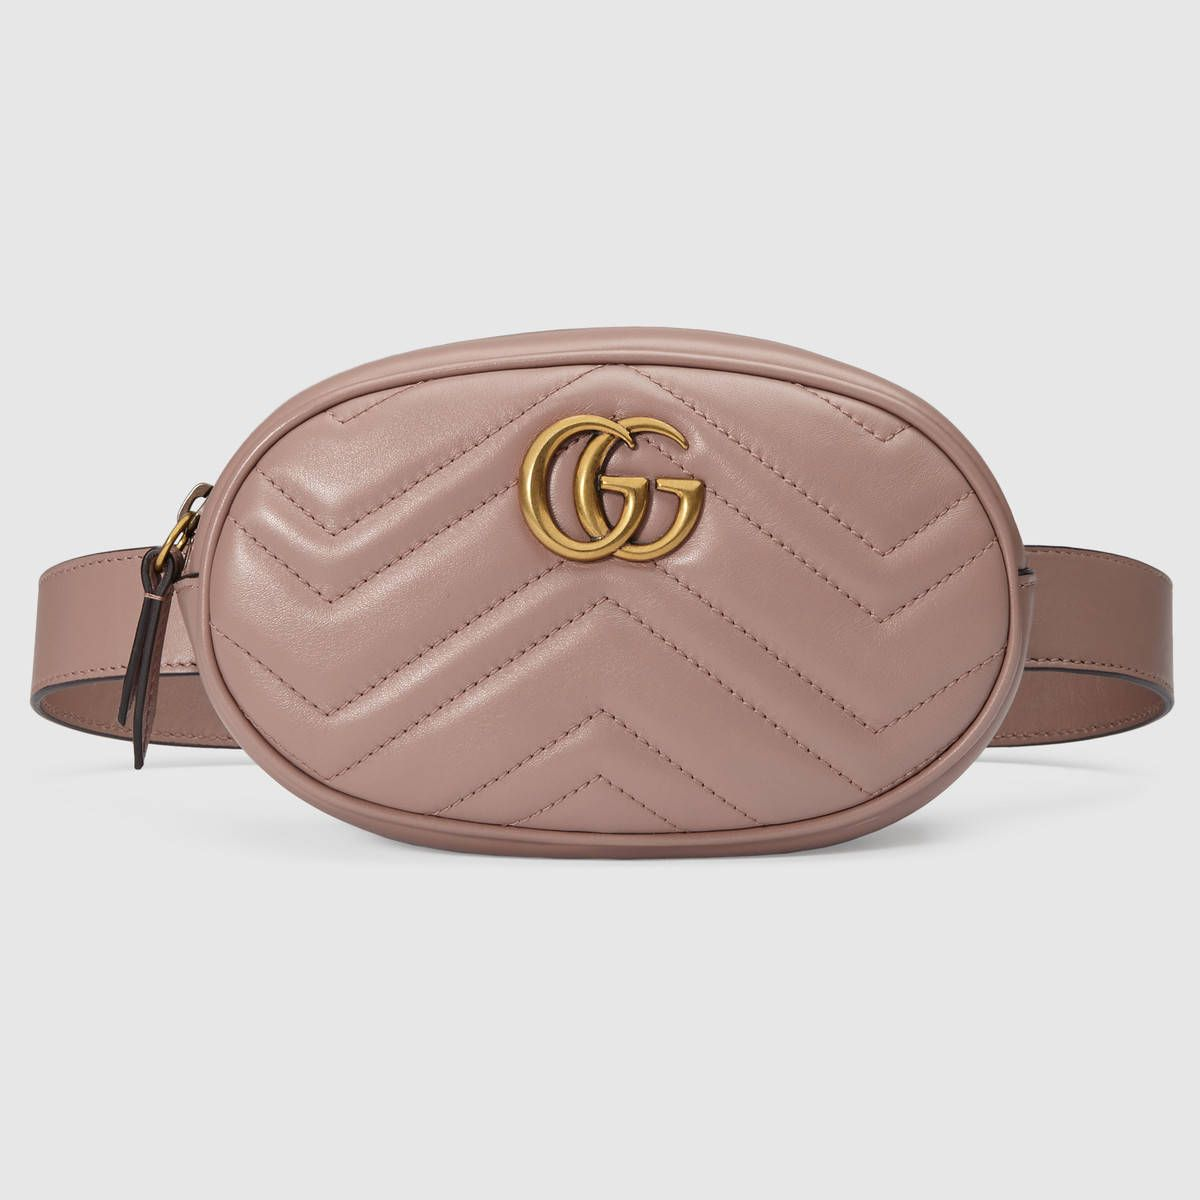 b8f7702c3db GG Marmont matelassé leather belt bag in 2019